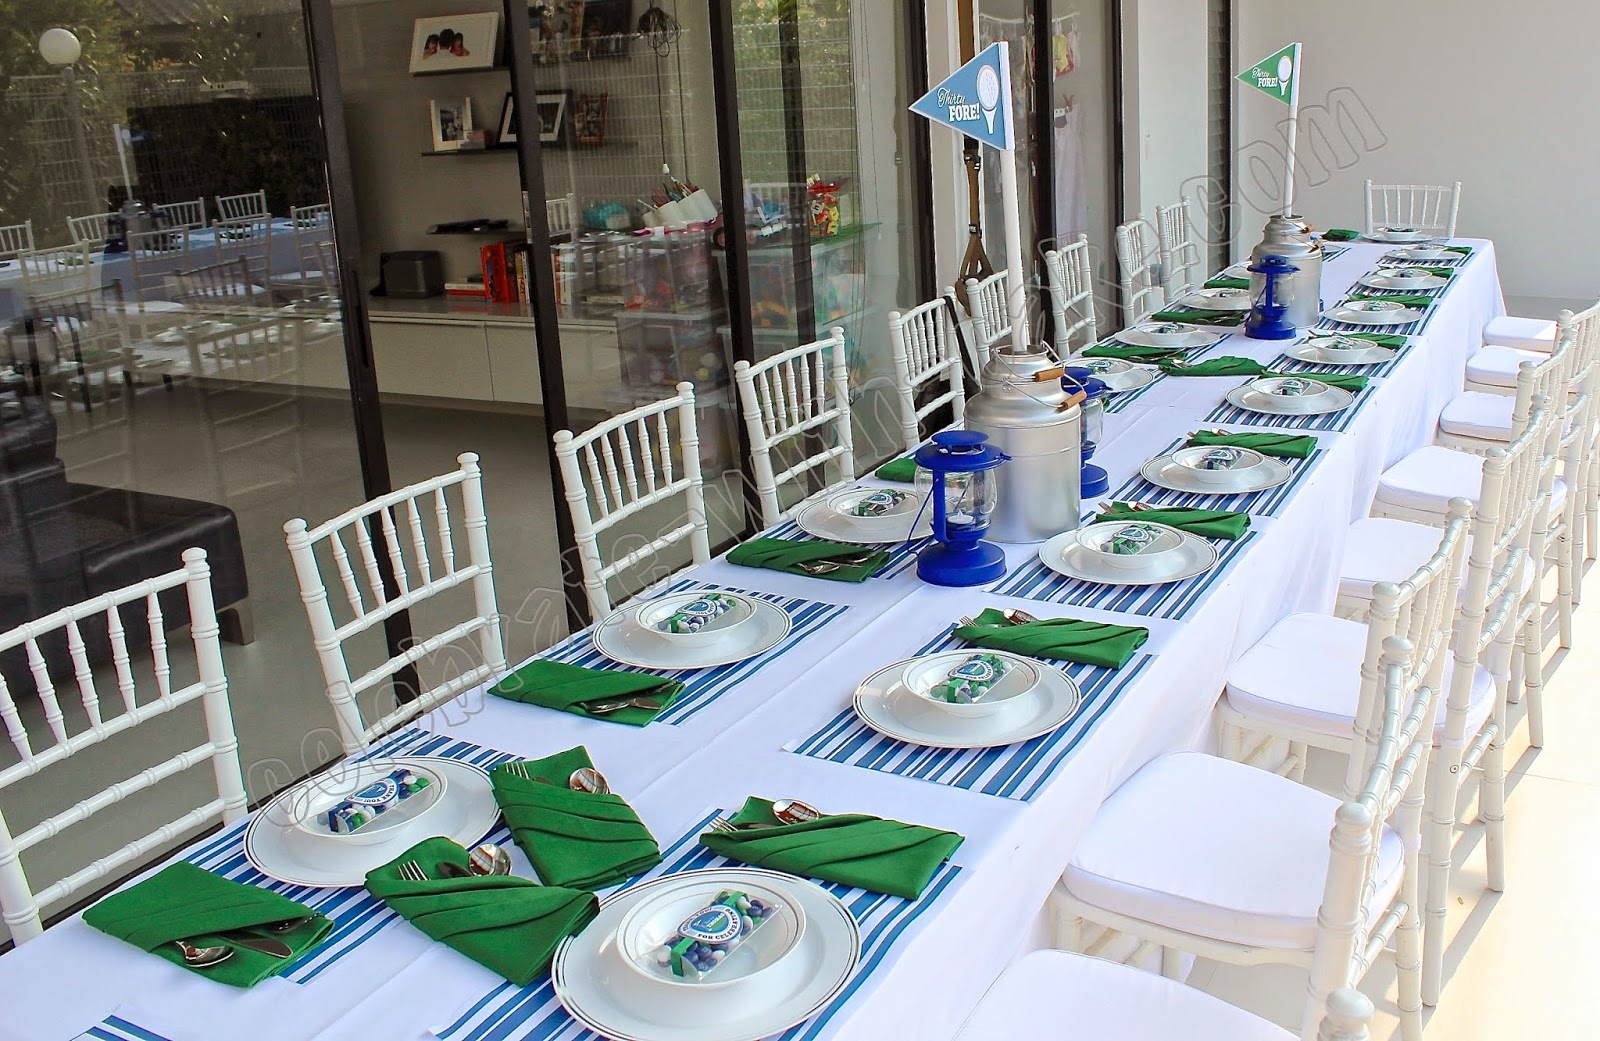 Magnificent Golf Themed Dessert Table Click Post To View More Pictures Home Interior And Landscaping Pimpapssignezvosmurscom